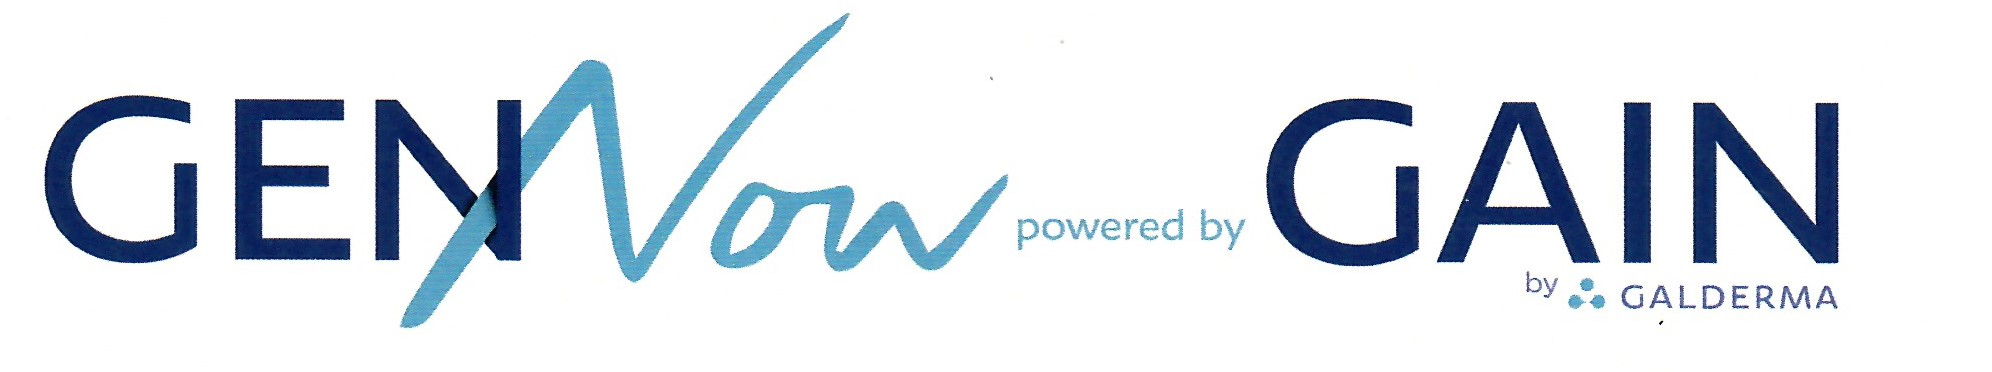 Gen Now powered by Gain